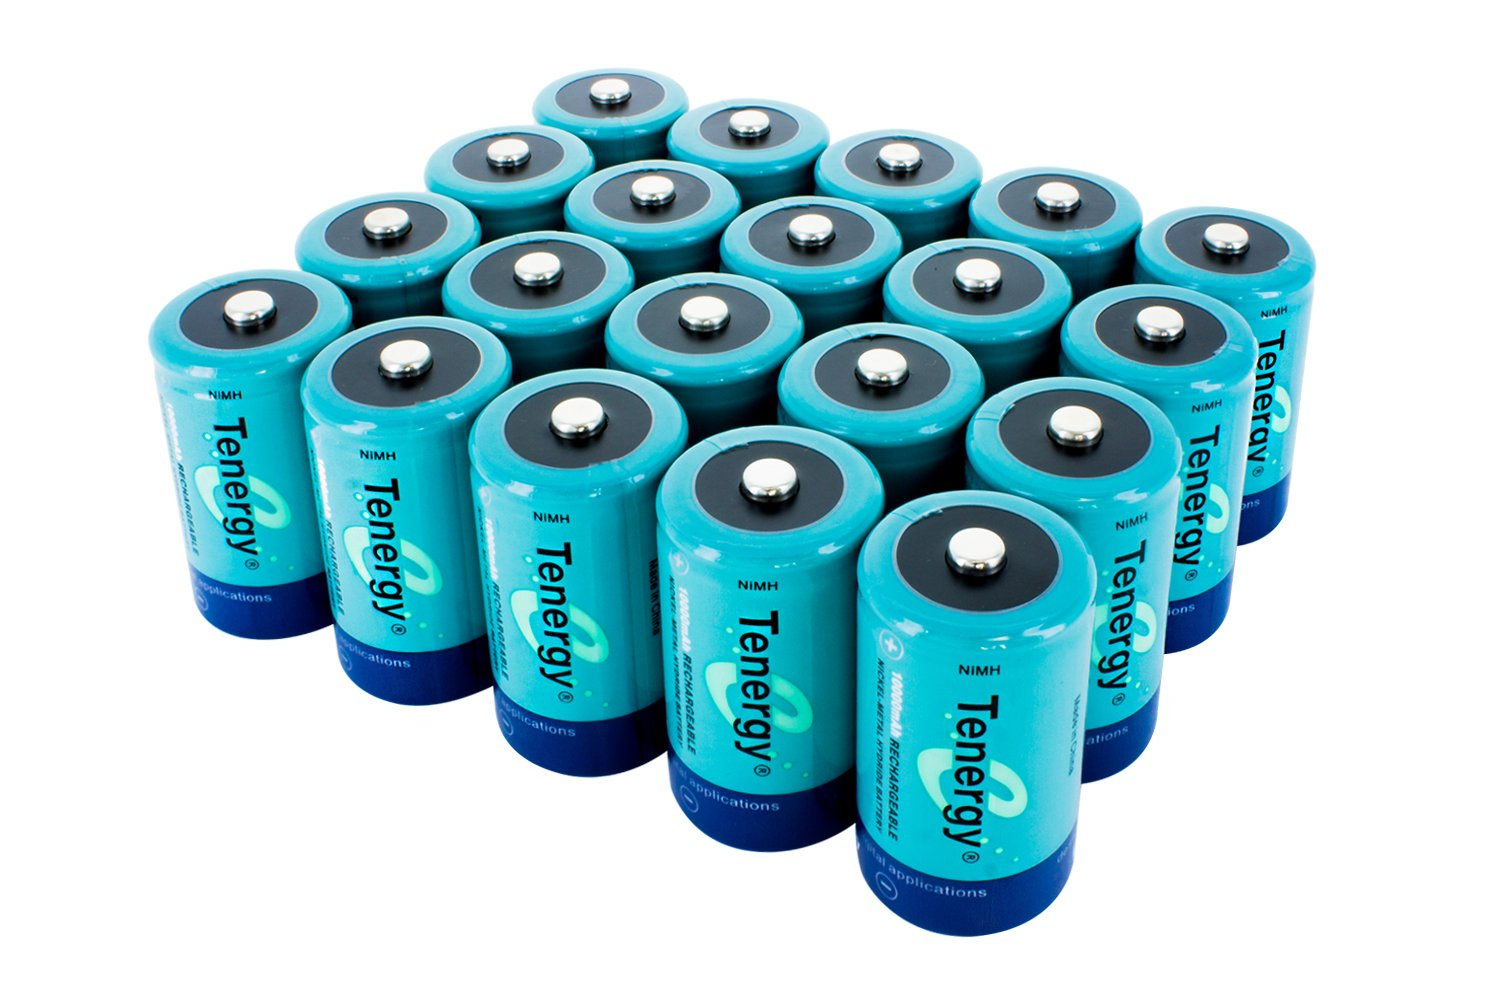 Saving Combo: 20 pcs of Tenergy D Size 10,000mAh High Capacity High Rate NiMH Rechargeable Batteries - UL Certified by Tenergy